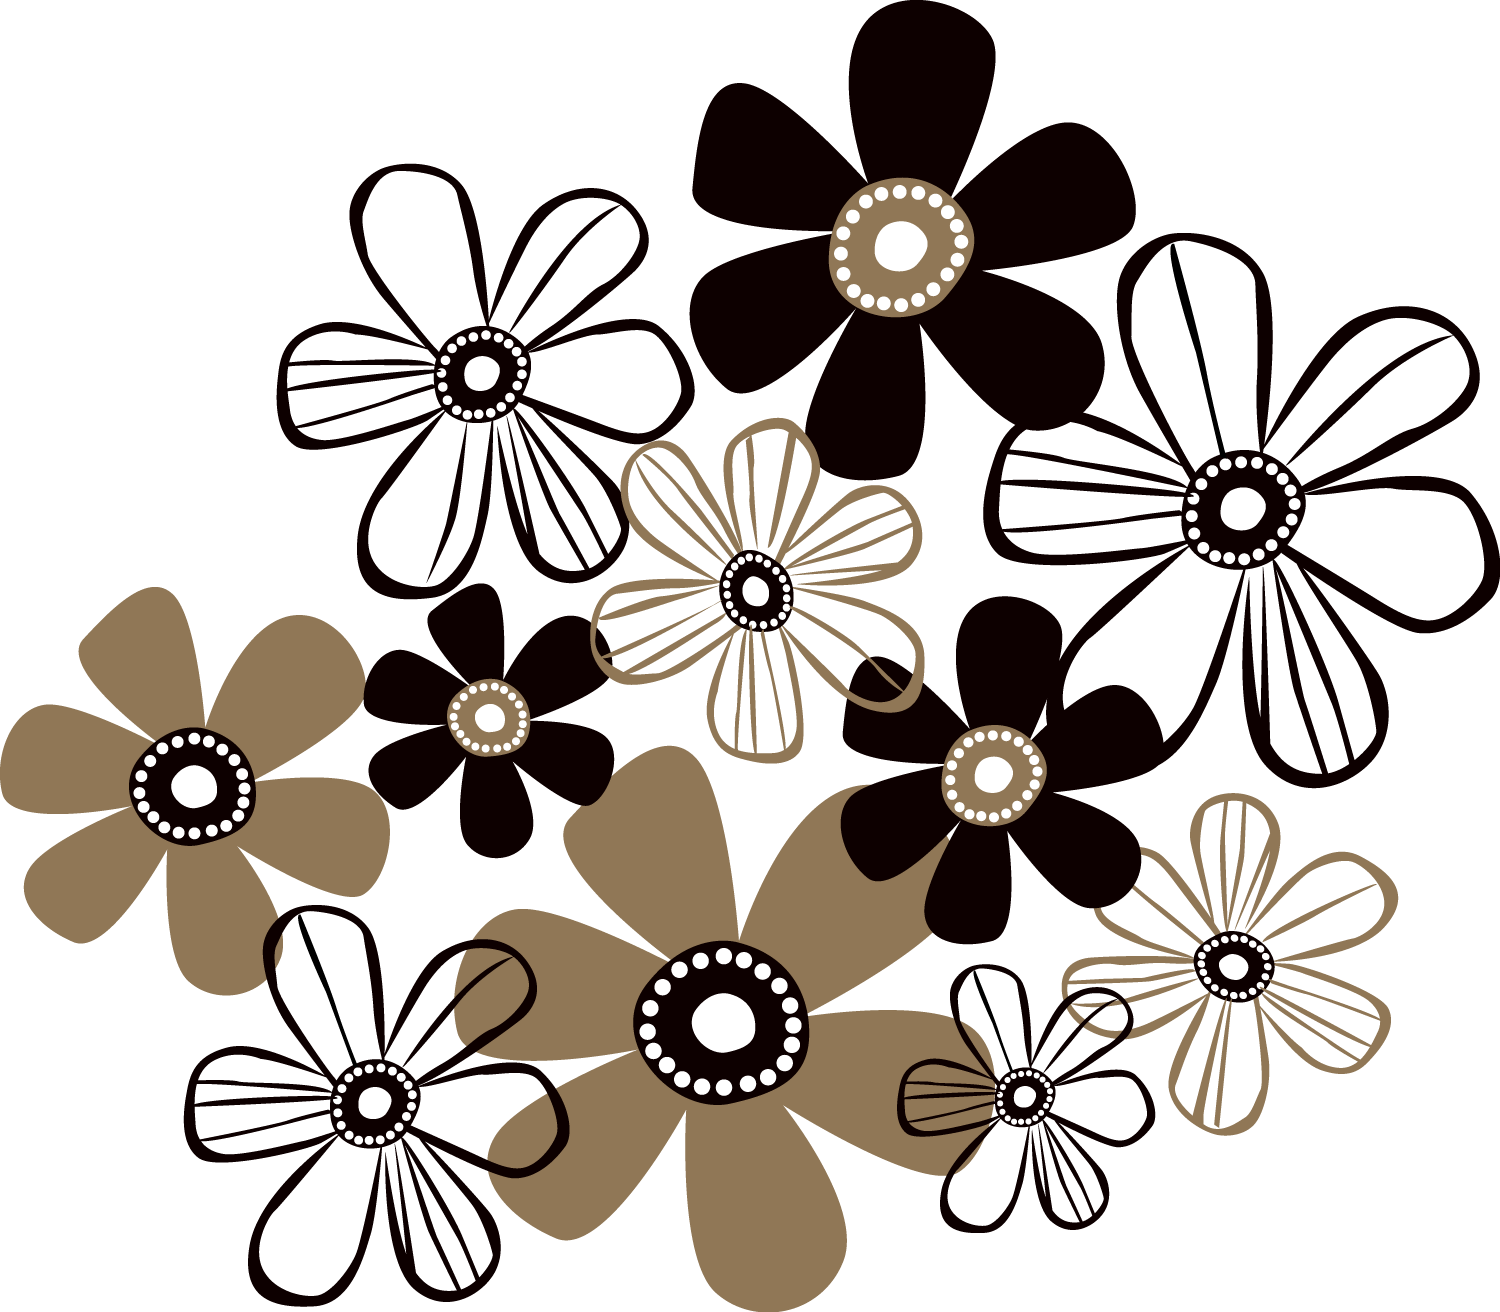 1500x1312 Jasmine Flower Drawing Pictures And Cliparts, Download Free